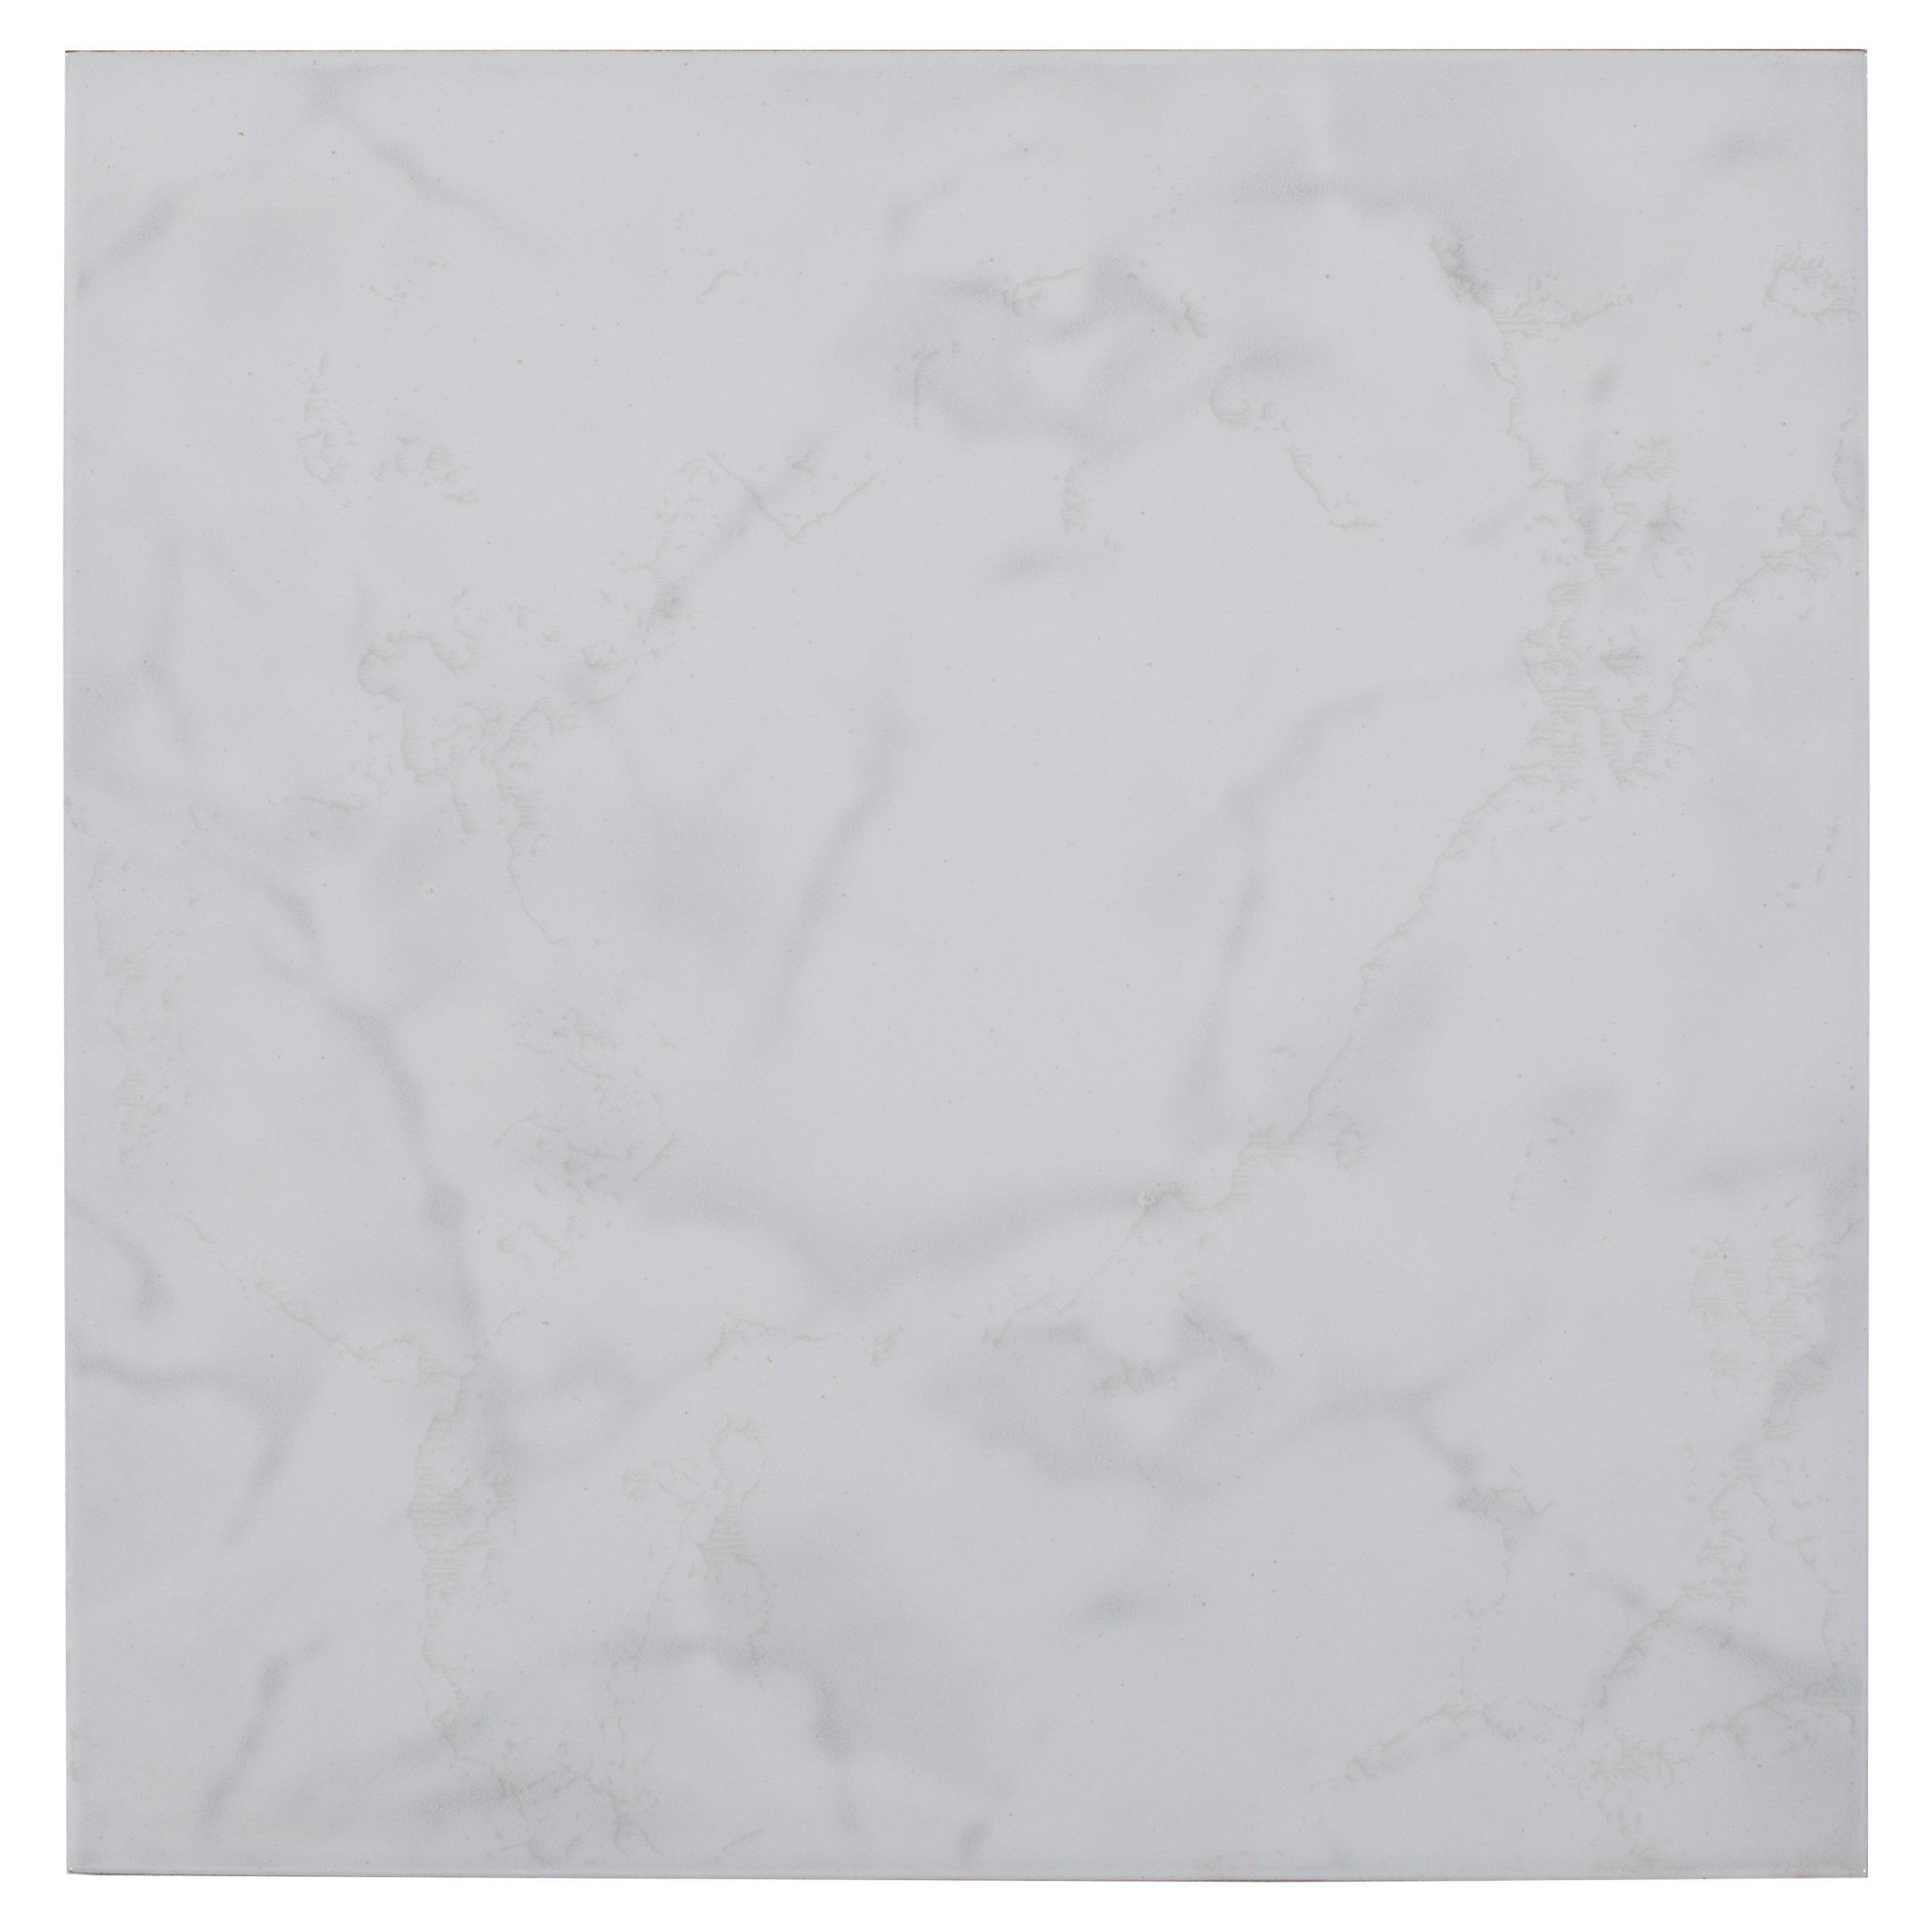 Crystal White Ceramic Tile 12in x 12in 100205400 Floor and